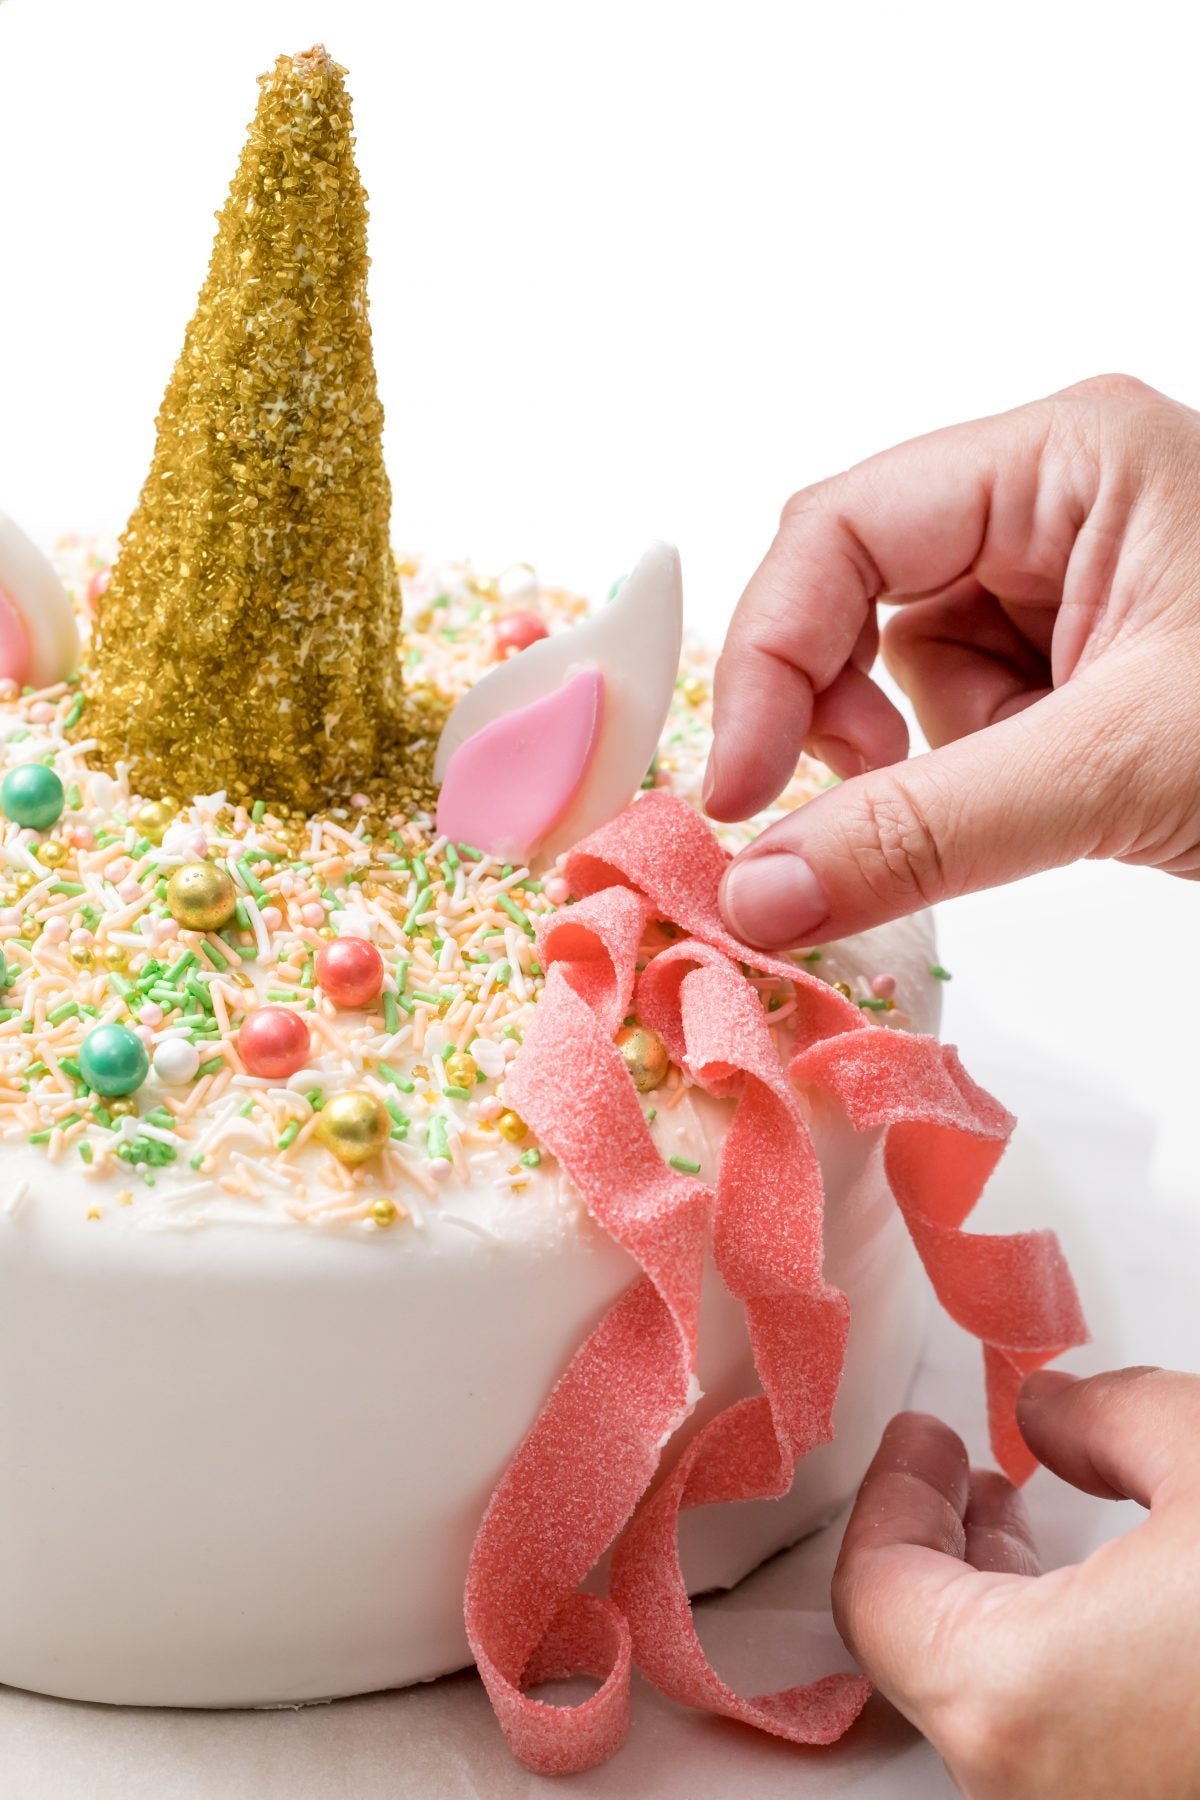 PLACE CANDY STRIPS ON CAKE BY PRESSING ON ONE END AND TWISTING THEM.